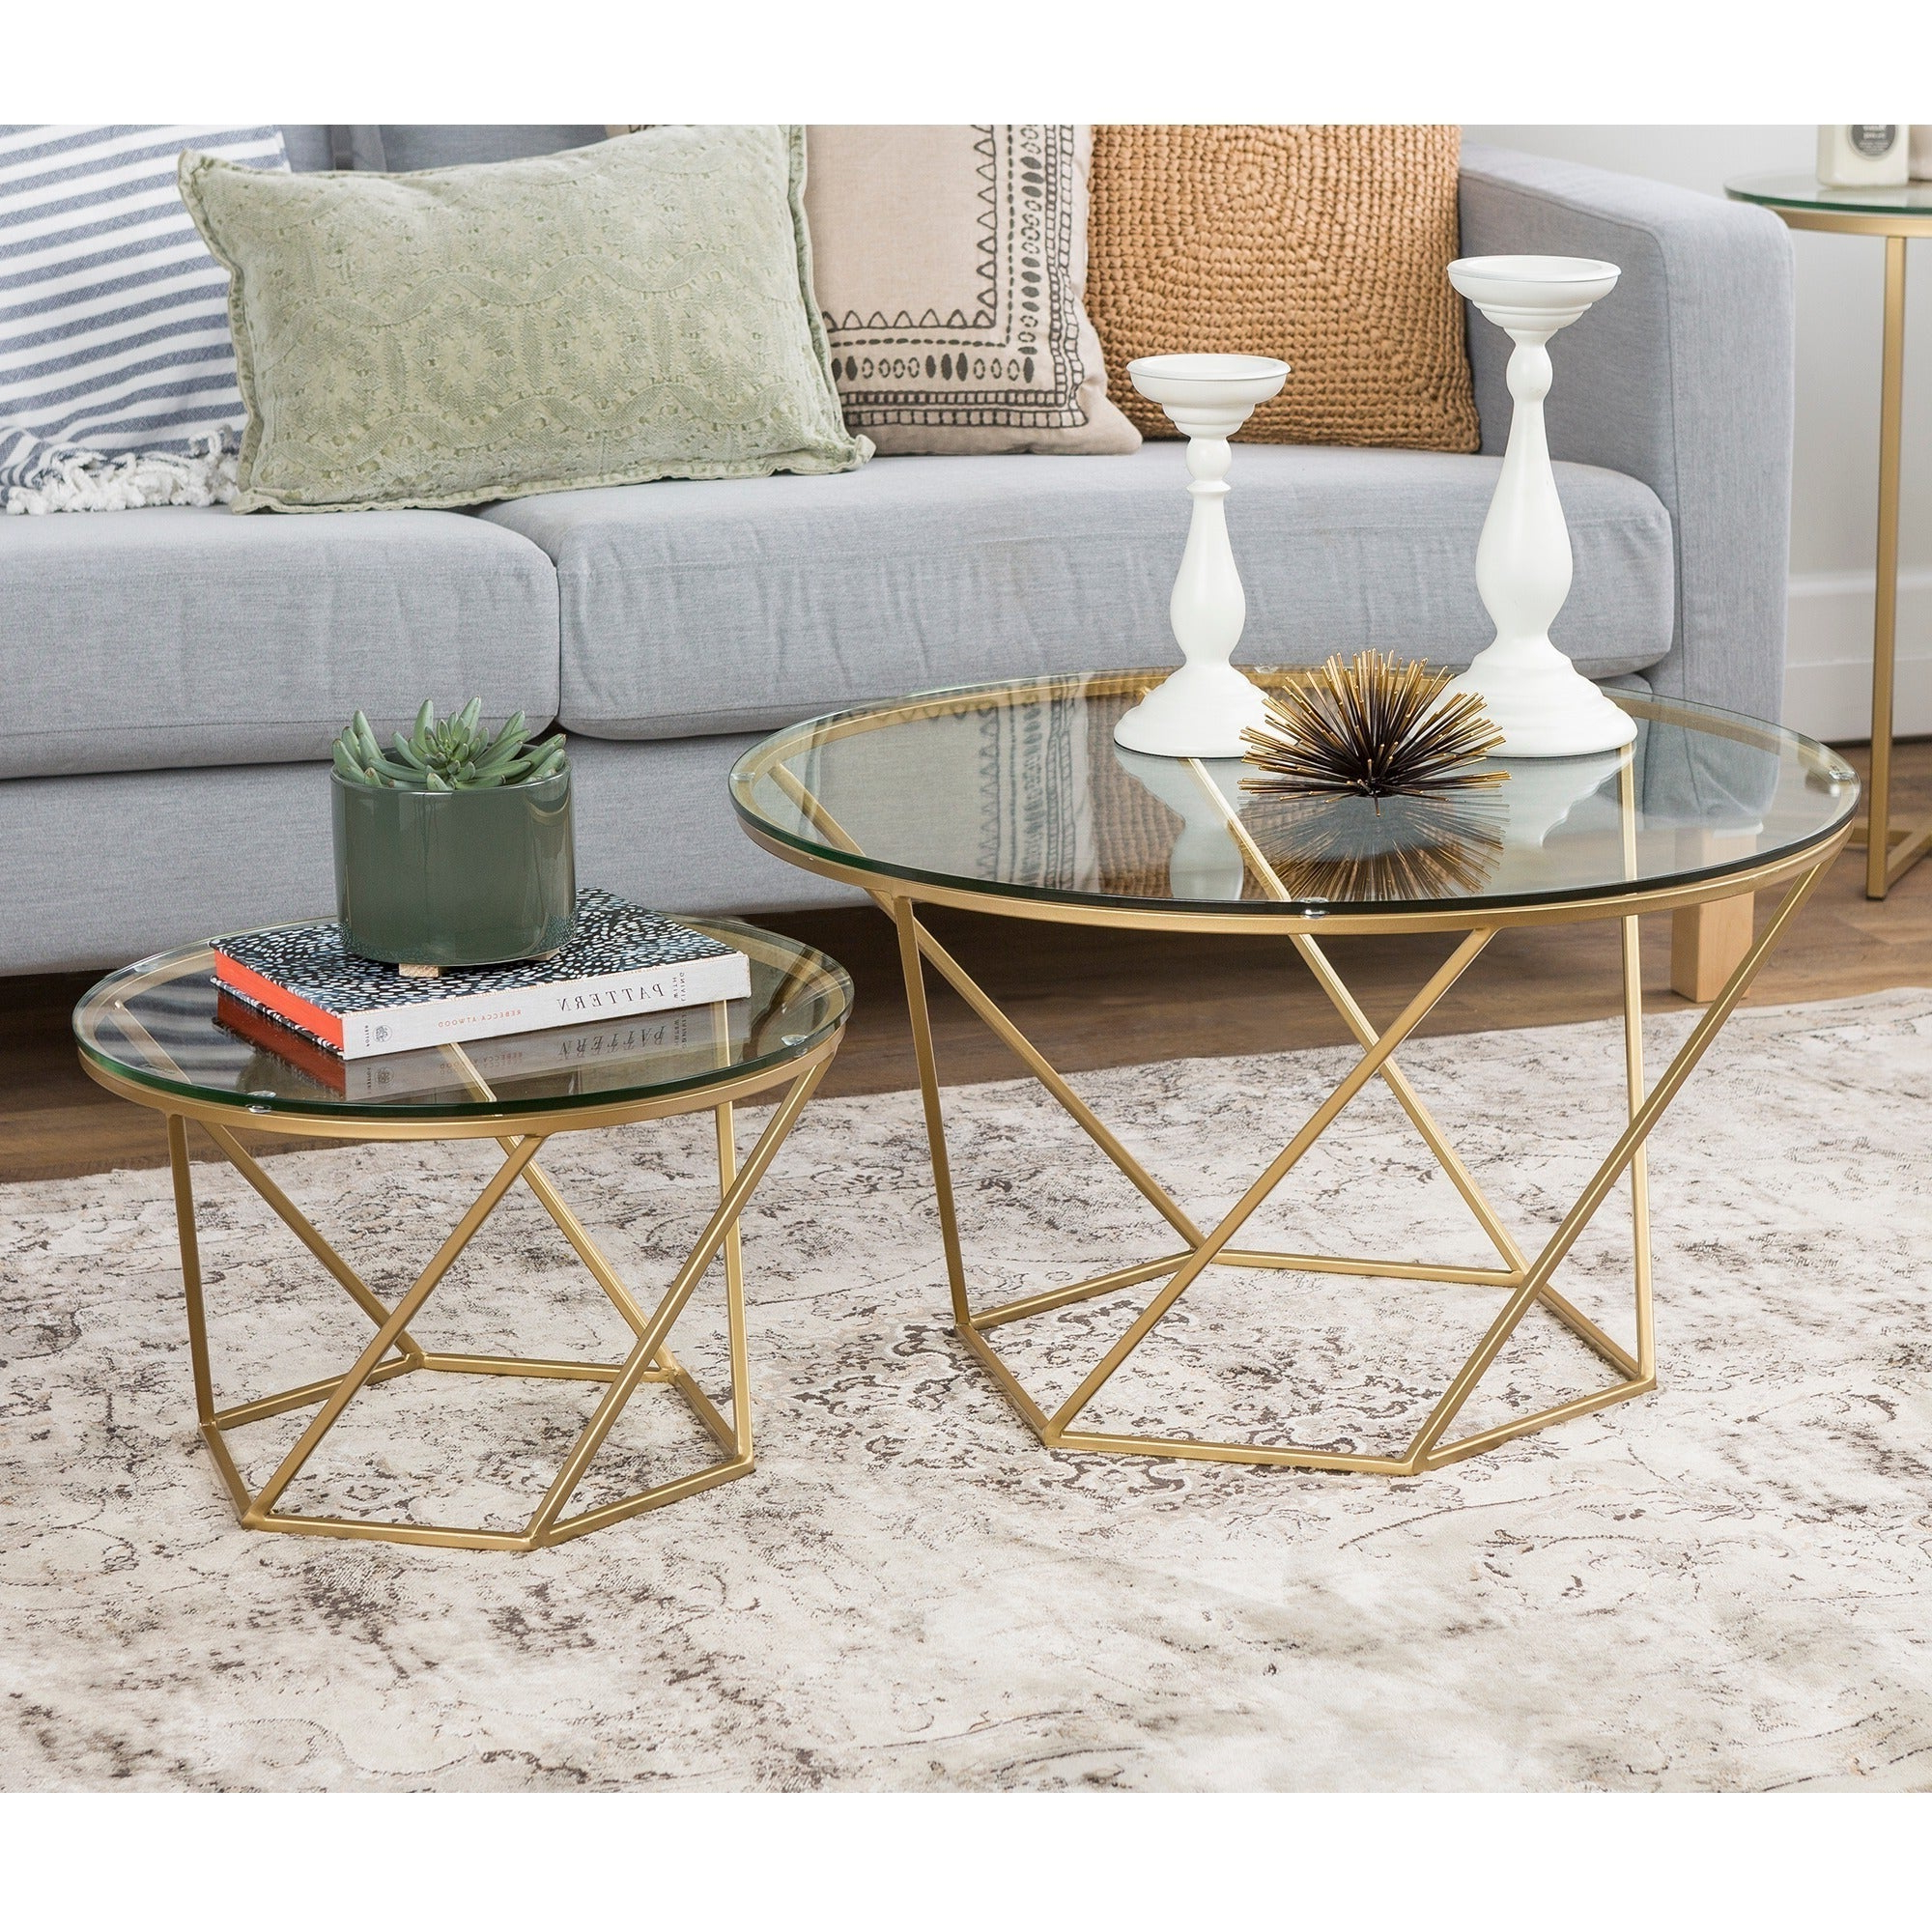 Most Current Silver Orchid Grant Glam Nesting Cocktail Tables With Regard To Silver Orchid Grant Round Glass Nesting Coffee Table Set – (View 8 of 20)